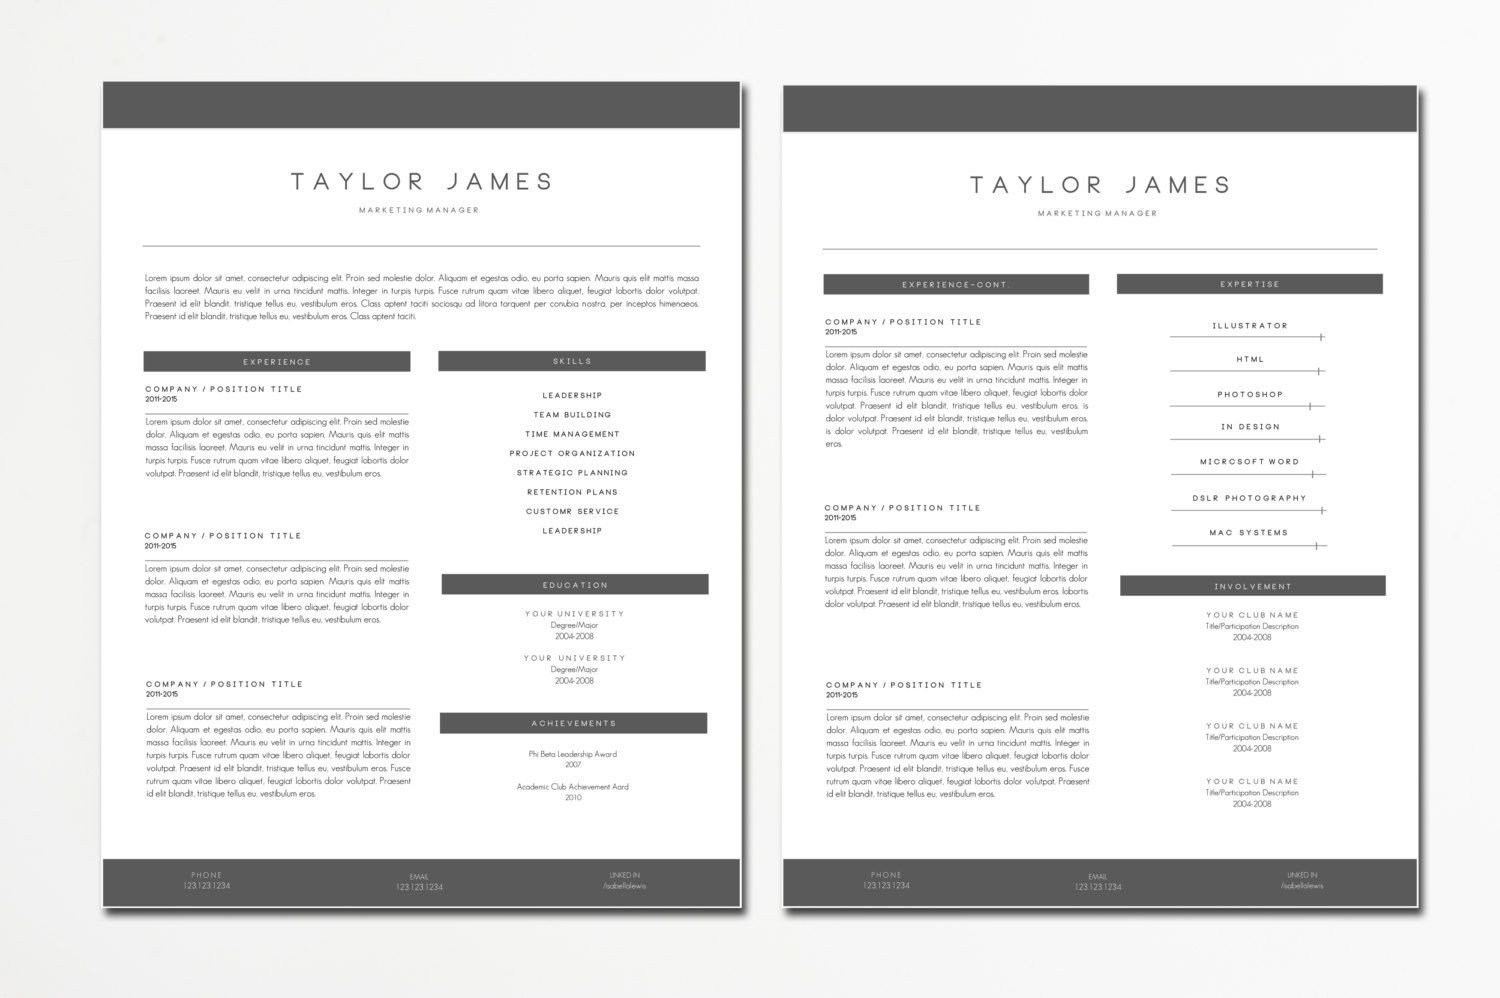 Textedit Resume Template Resume Templates and Cv Templates for Microsoft Word